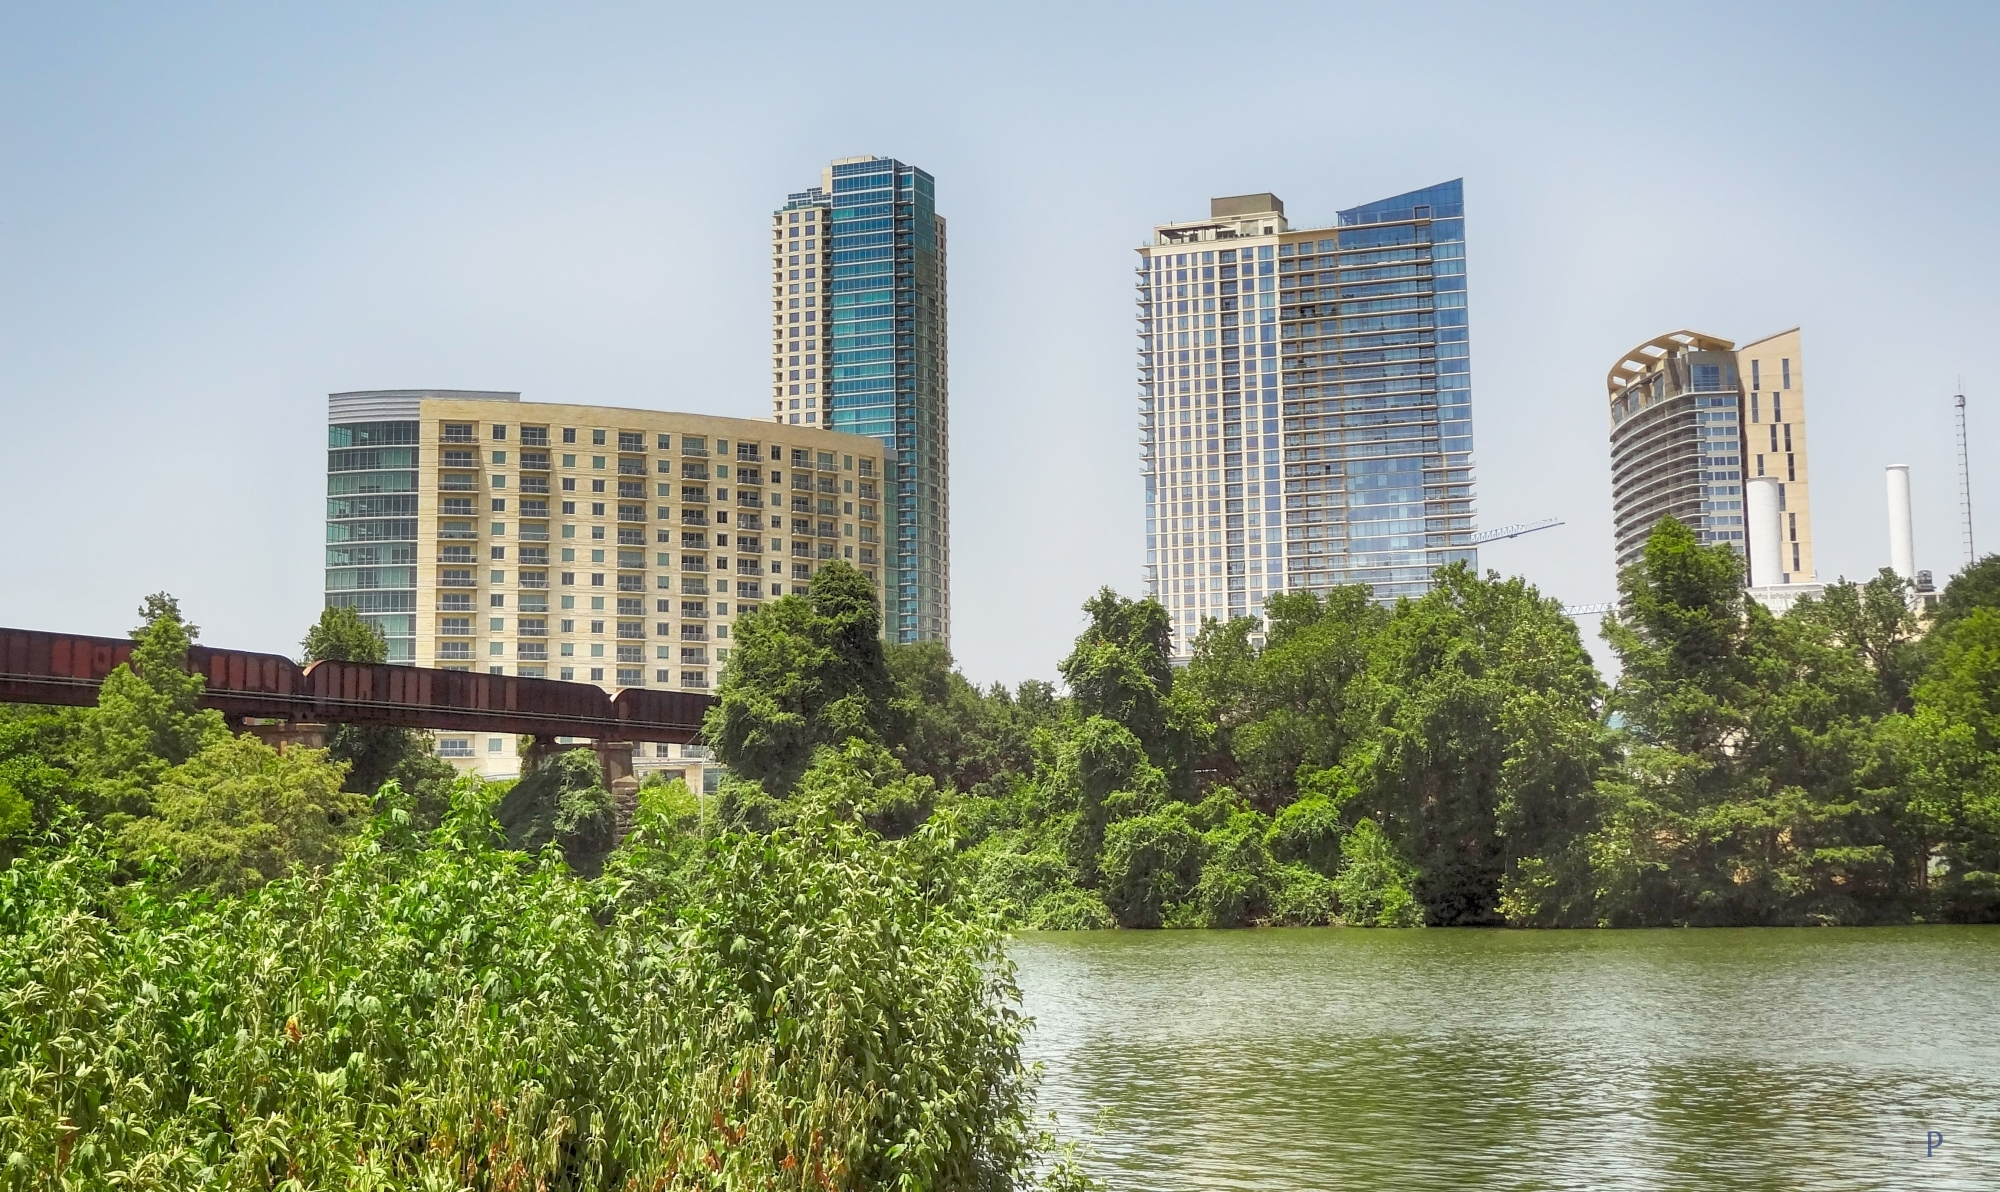 Town Lake Looking Towards Gables, The Spring, Bowie Residential Towers